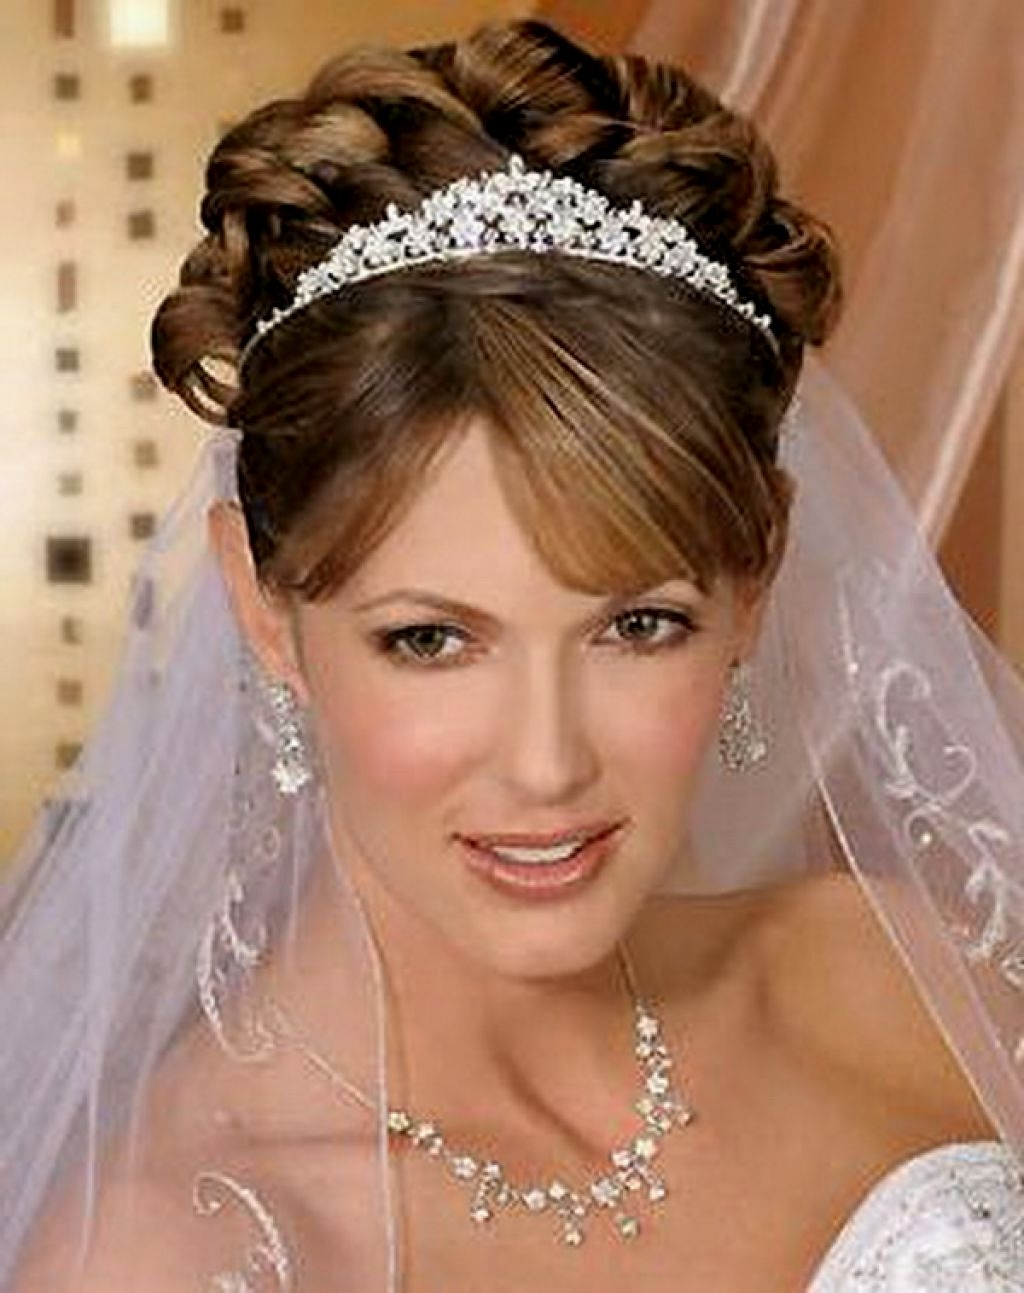 Best And Newest Wedding Hairstyles For Long Hair With Tiara In Bridal Hairstyles Updo With Tiara (View 2 of 15)